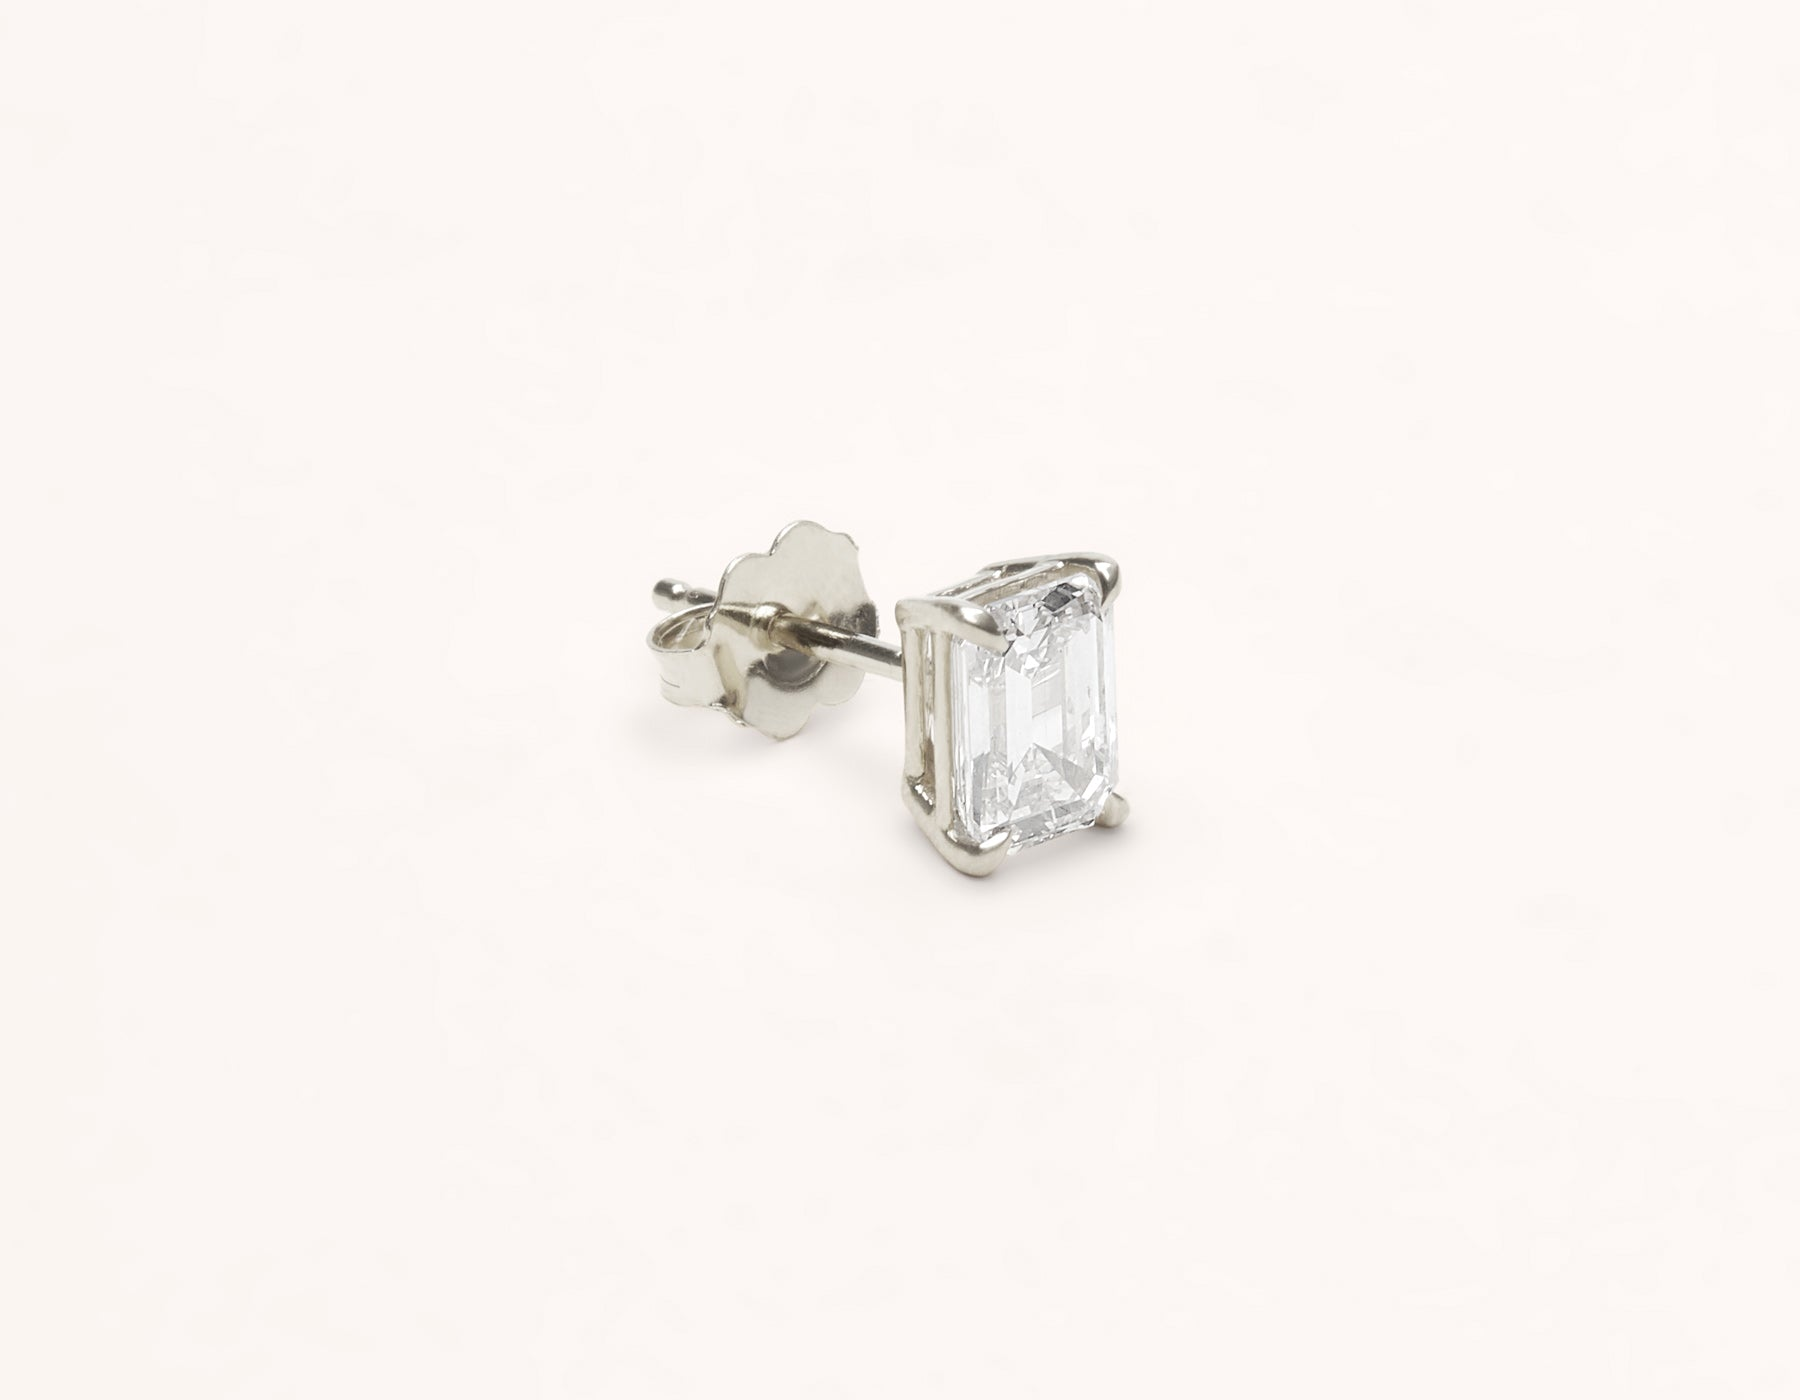 Vrai & Oro 1.0 carat Emerald Diamond stud earring 18k solid gold simple modern, 18K White Gold